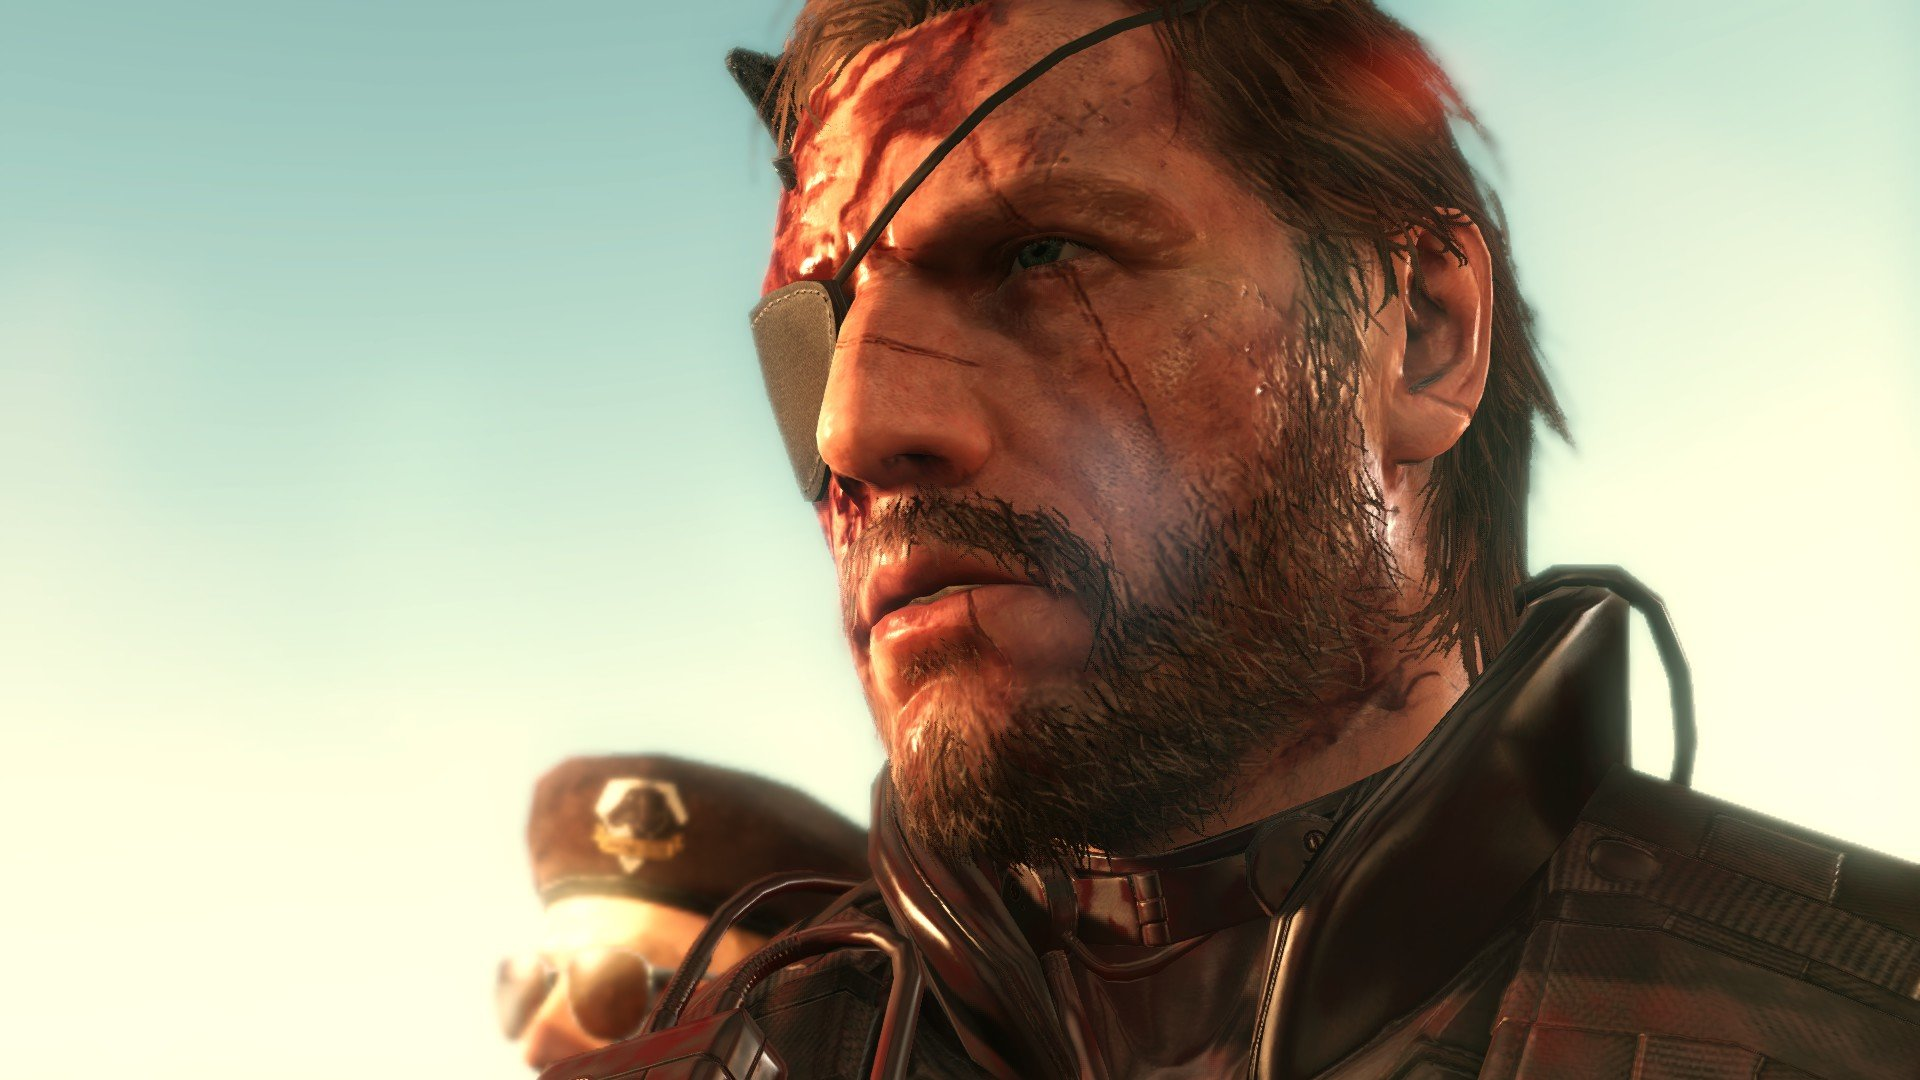 Awesome Metal Gear Solid 5 V The Phantom Pain Mgsv 5 Free